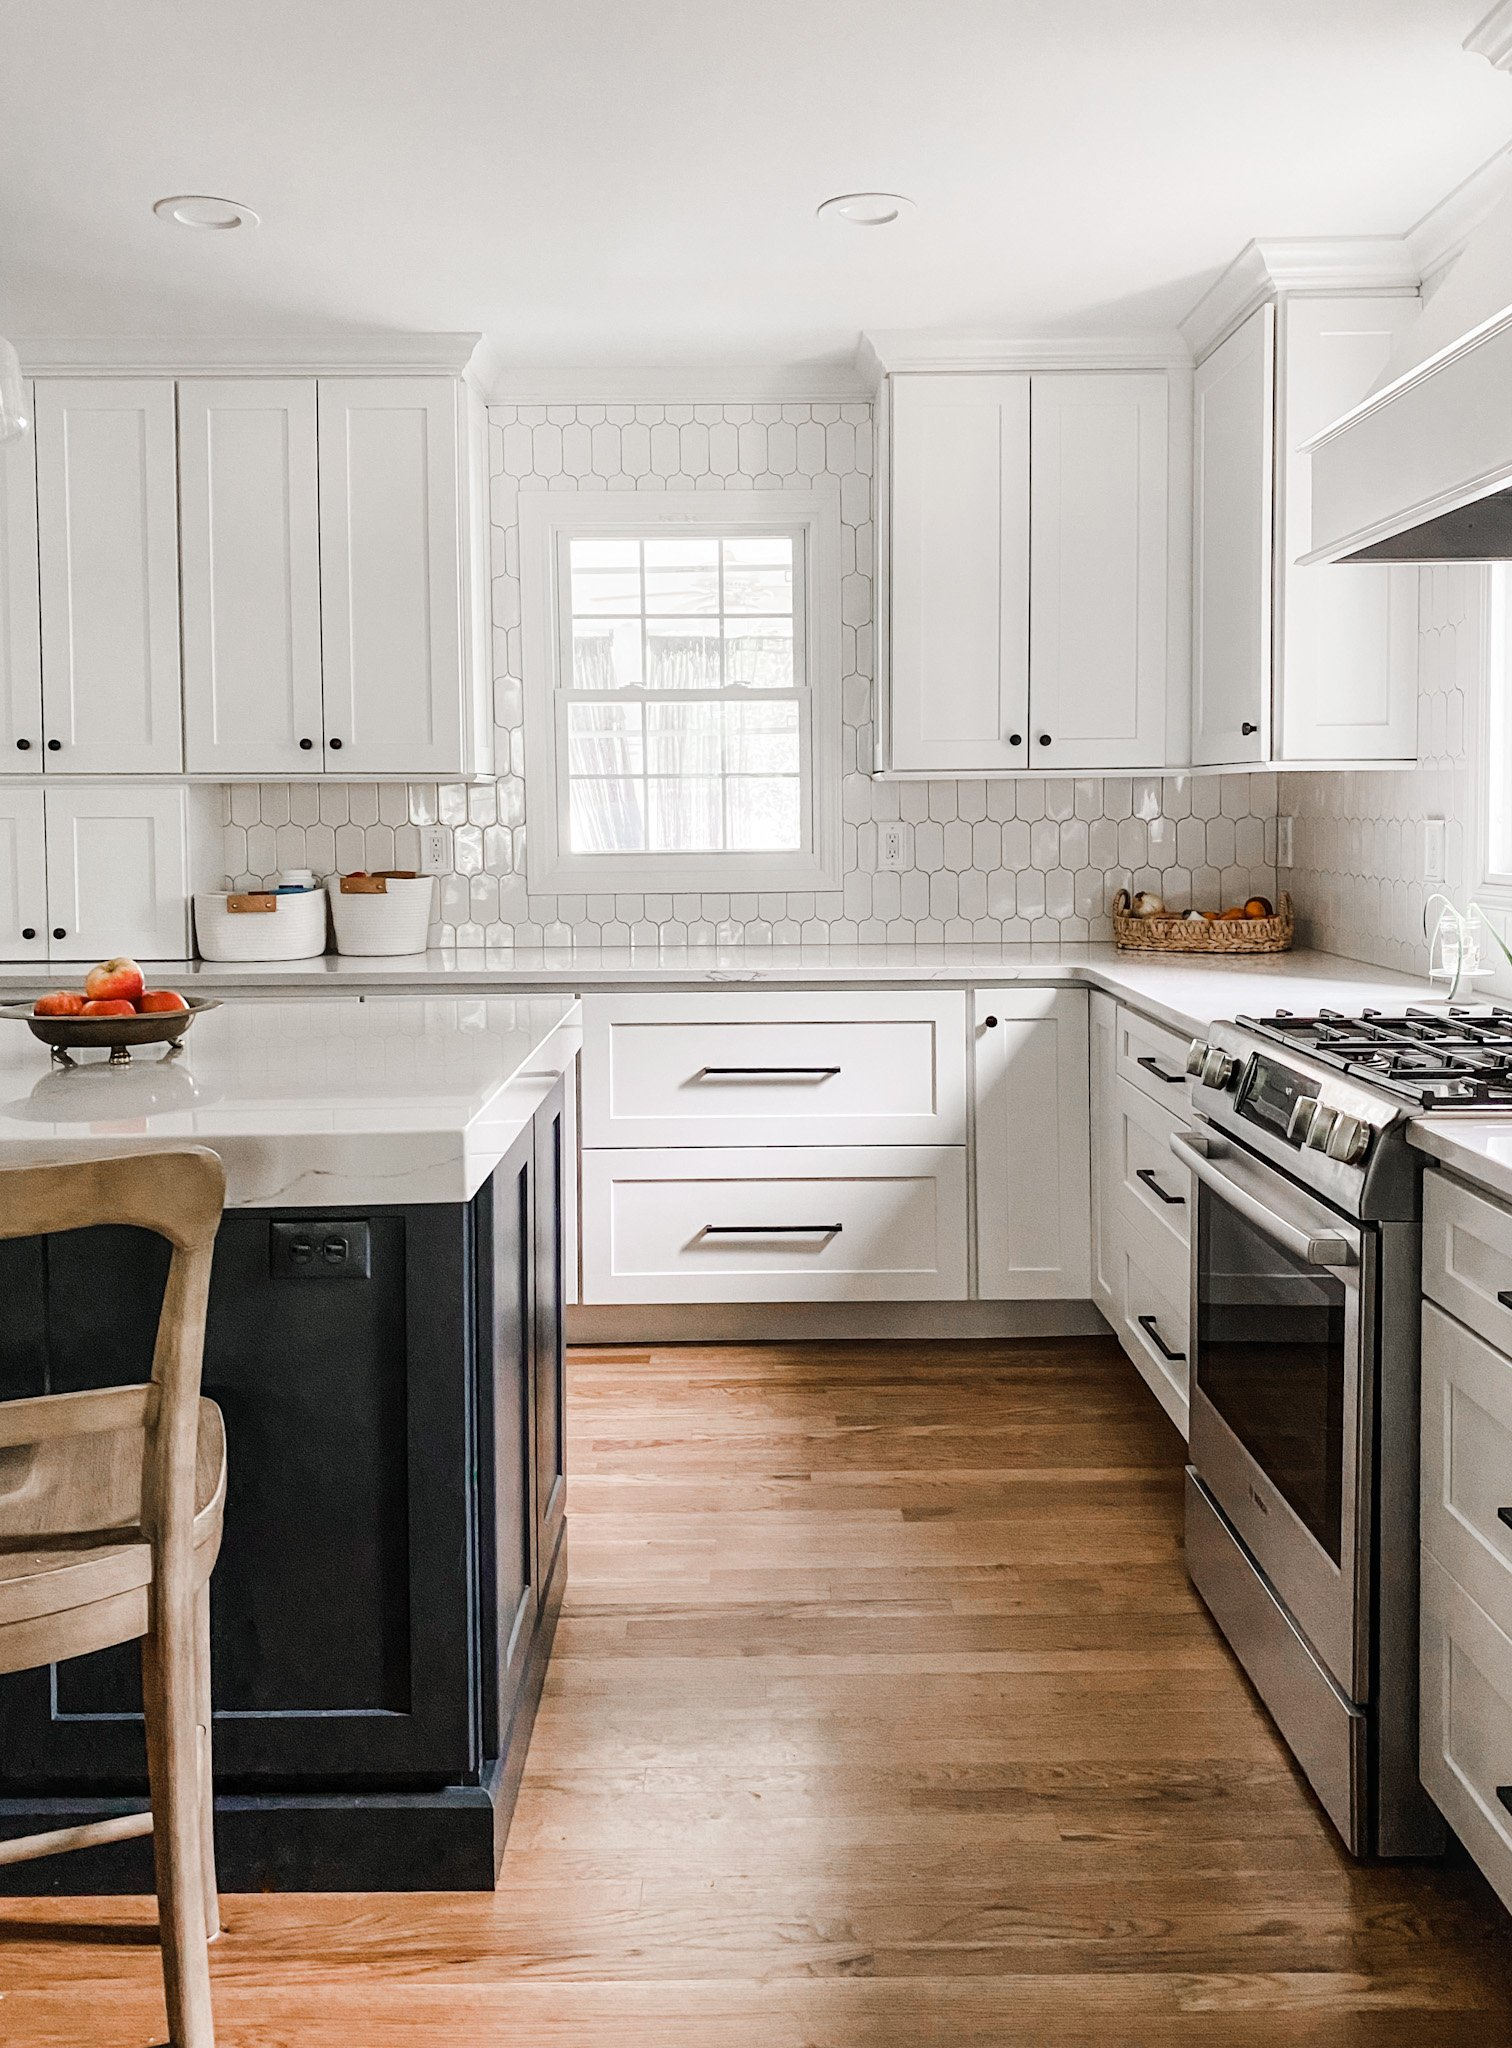 white cabinets and drawers in a family-friendly kitchen